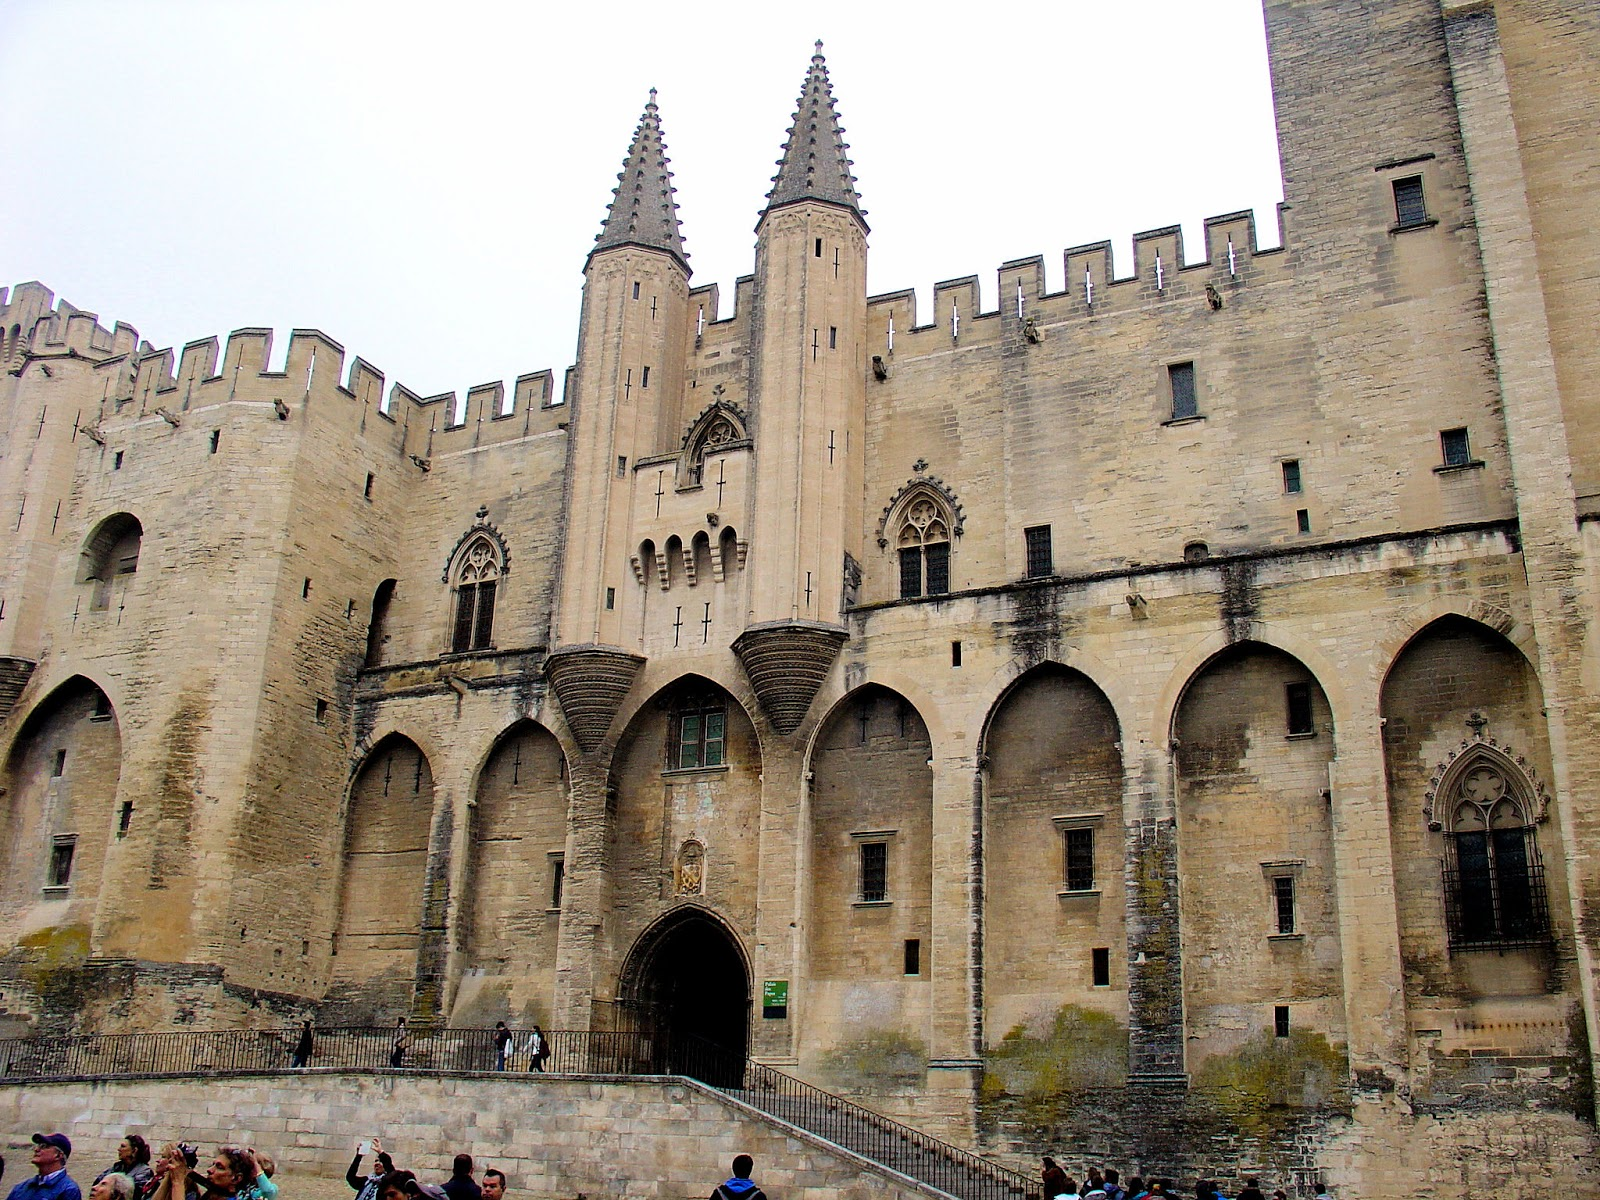 The main entrance to the Papal Palace in Avignon.